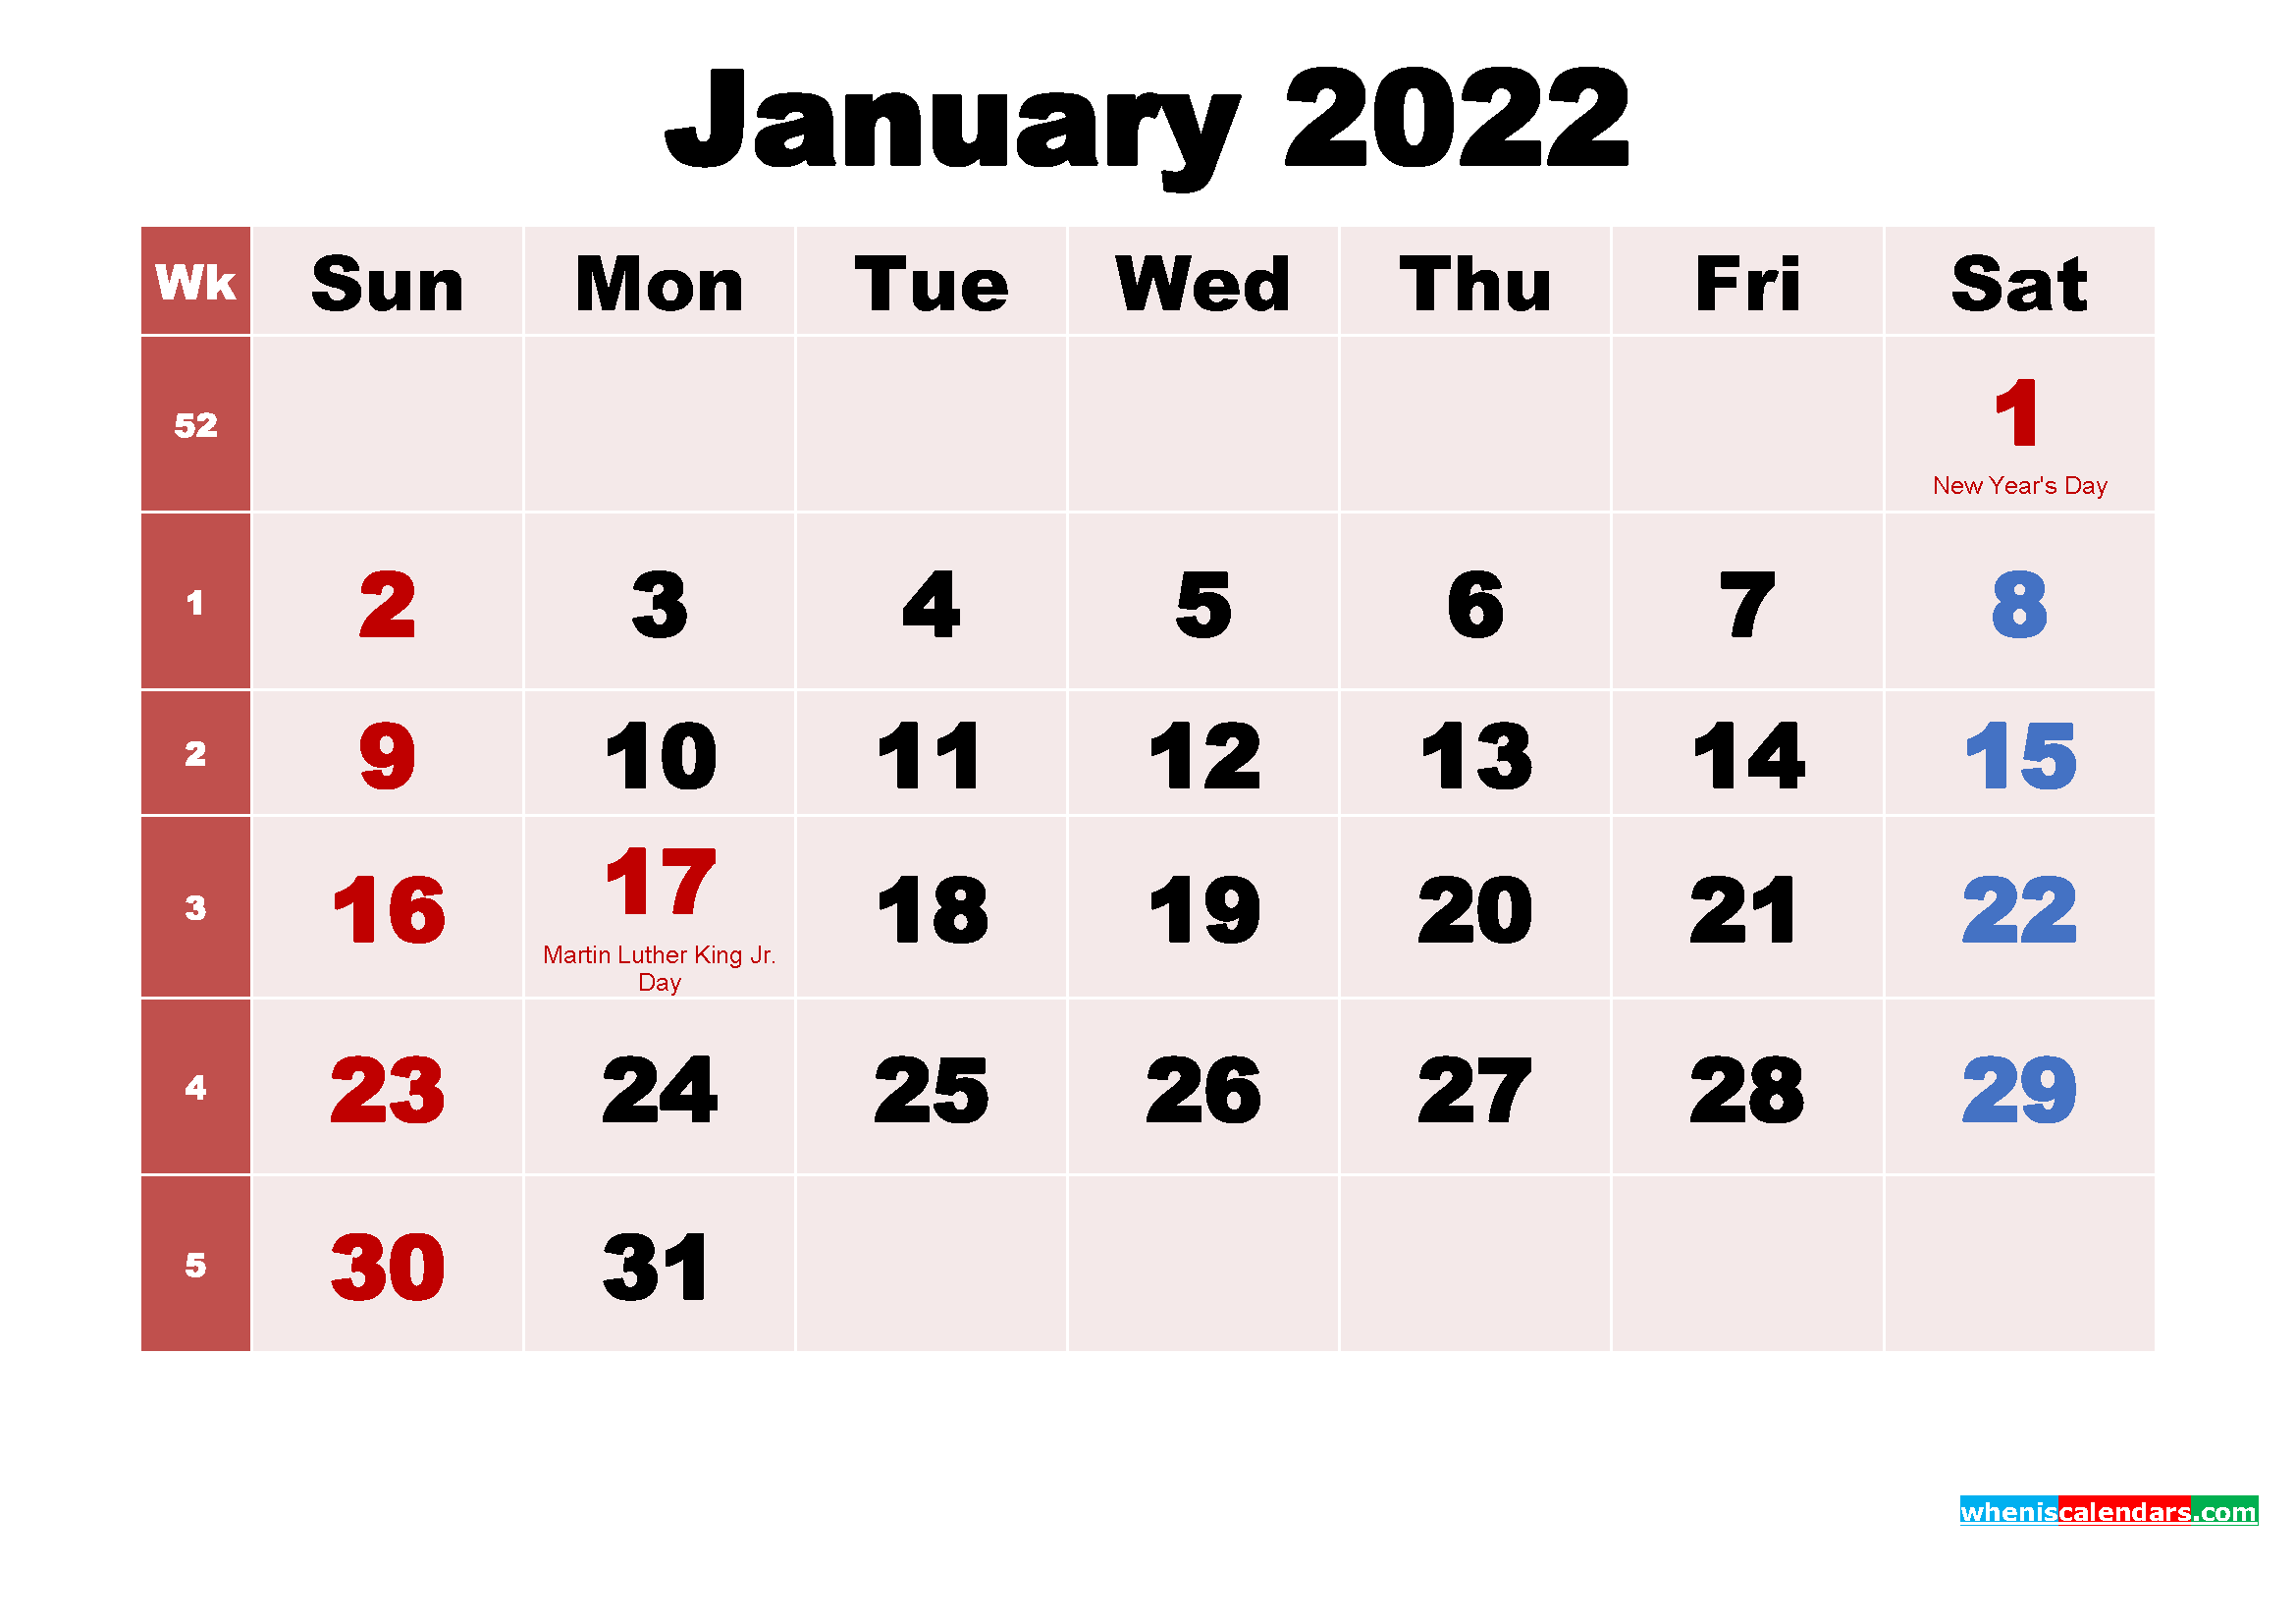 January 2022 Calendar Wallpaper Free Download